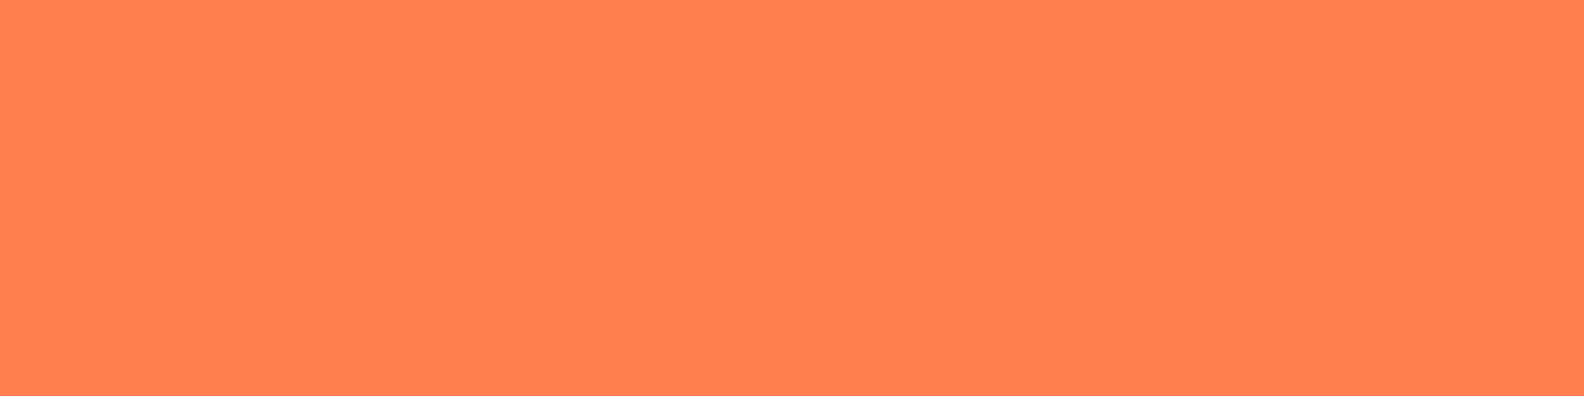 1584x396 Coral Solid Color Background